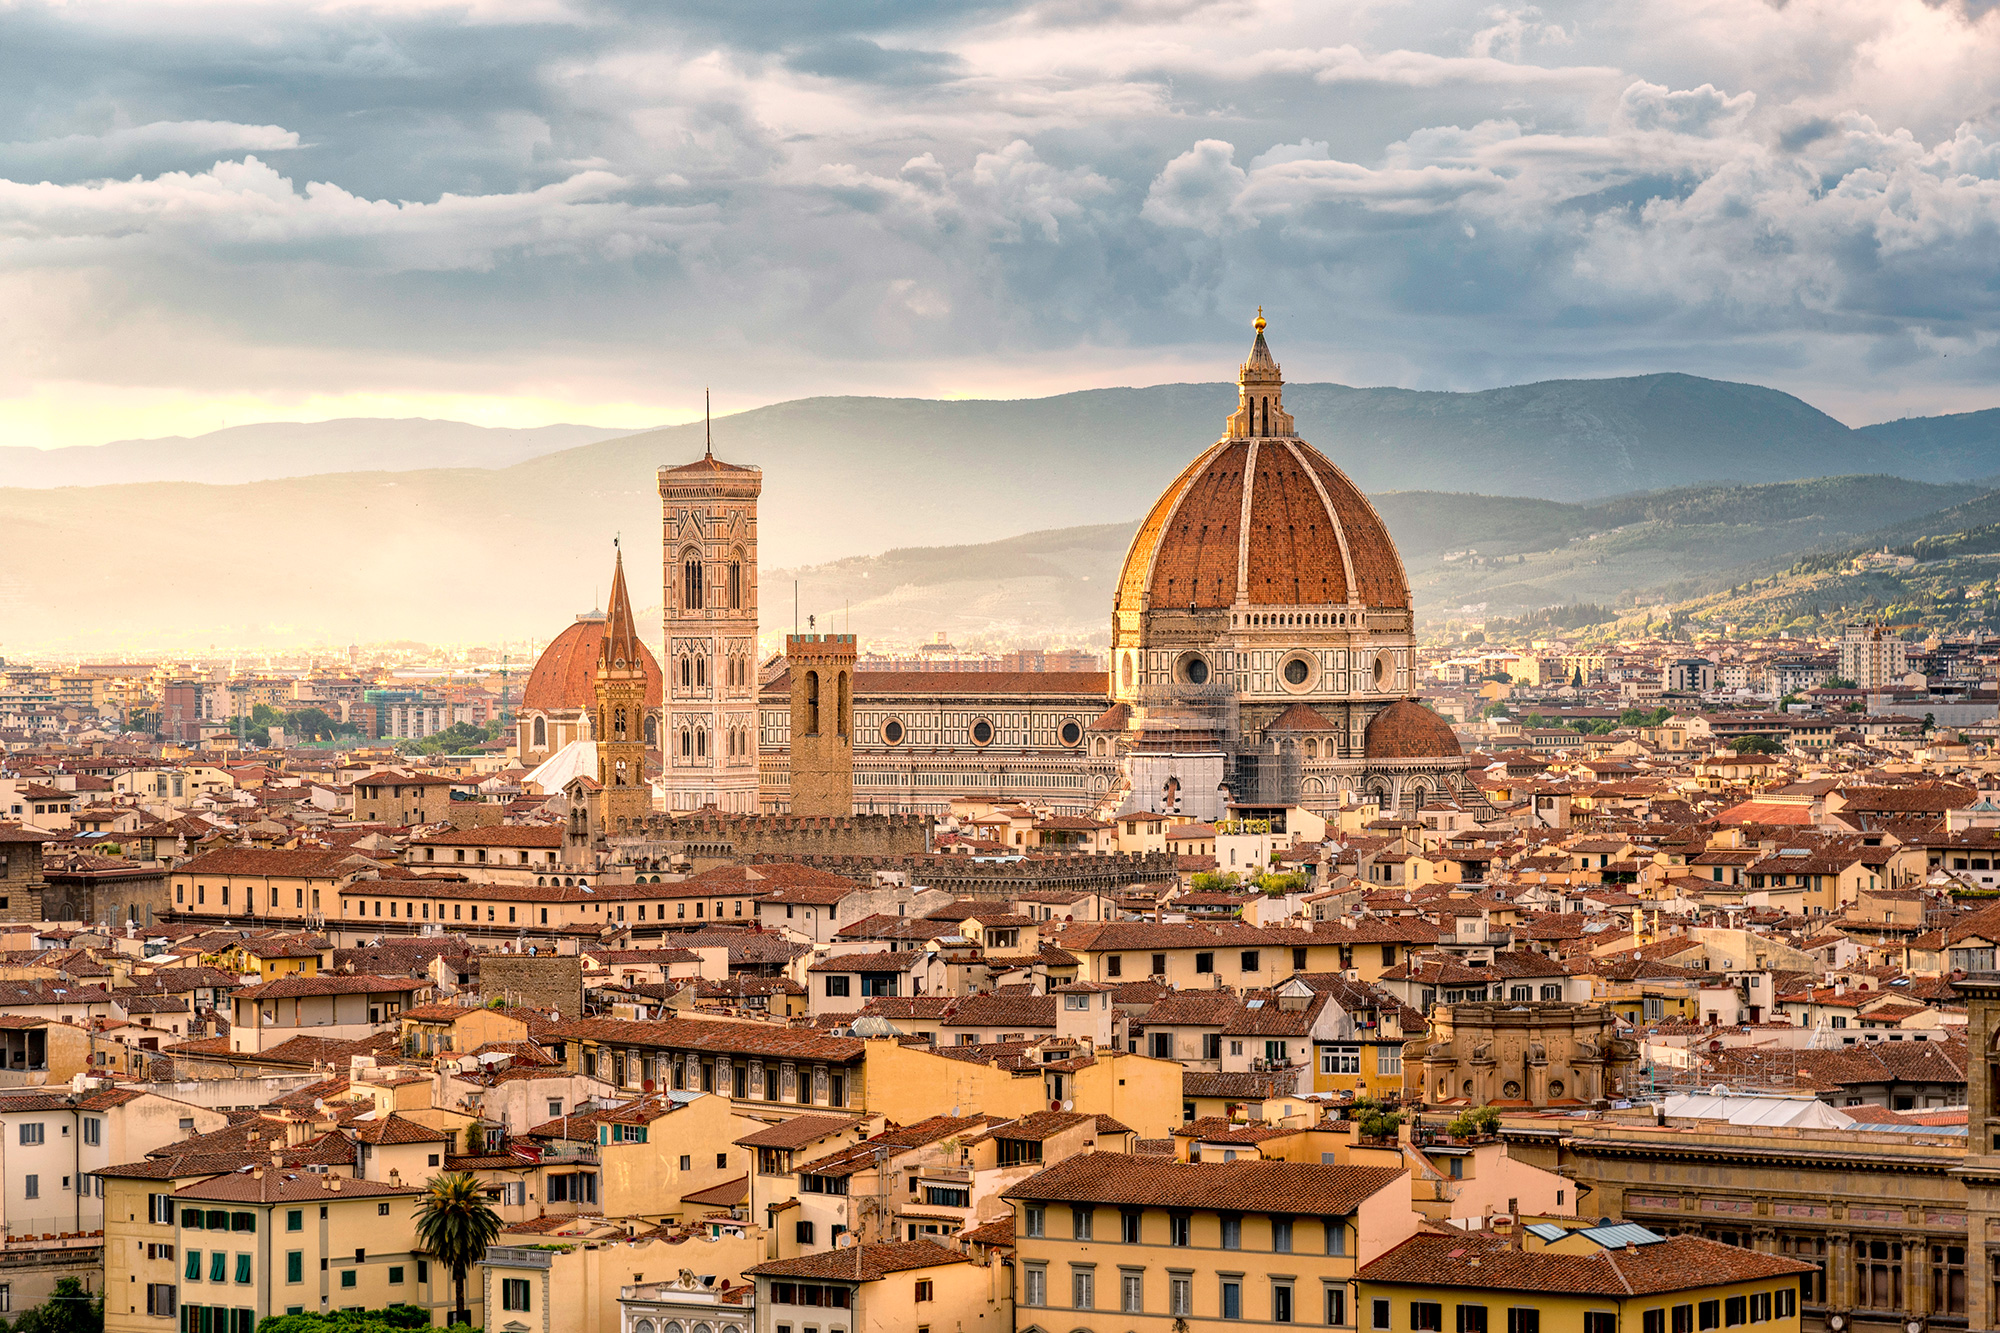 Beautiful sunset cityscape view of the Santa maria nouvelle Duomo and the town of Florence Italy